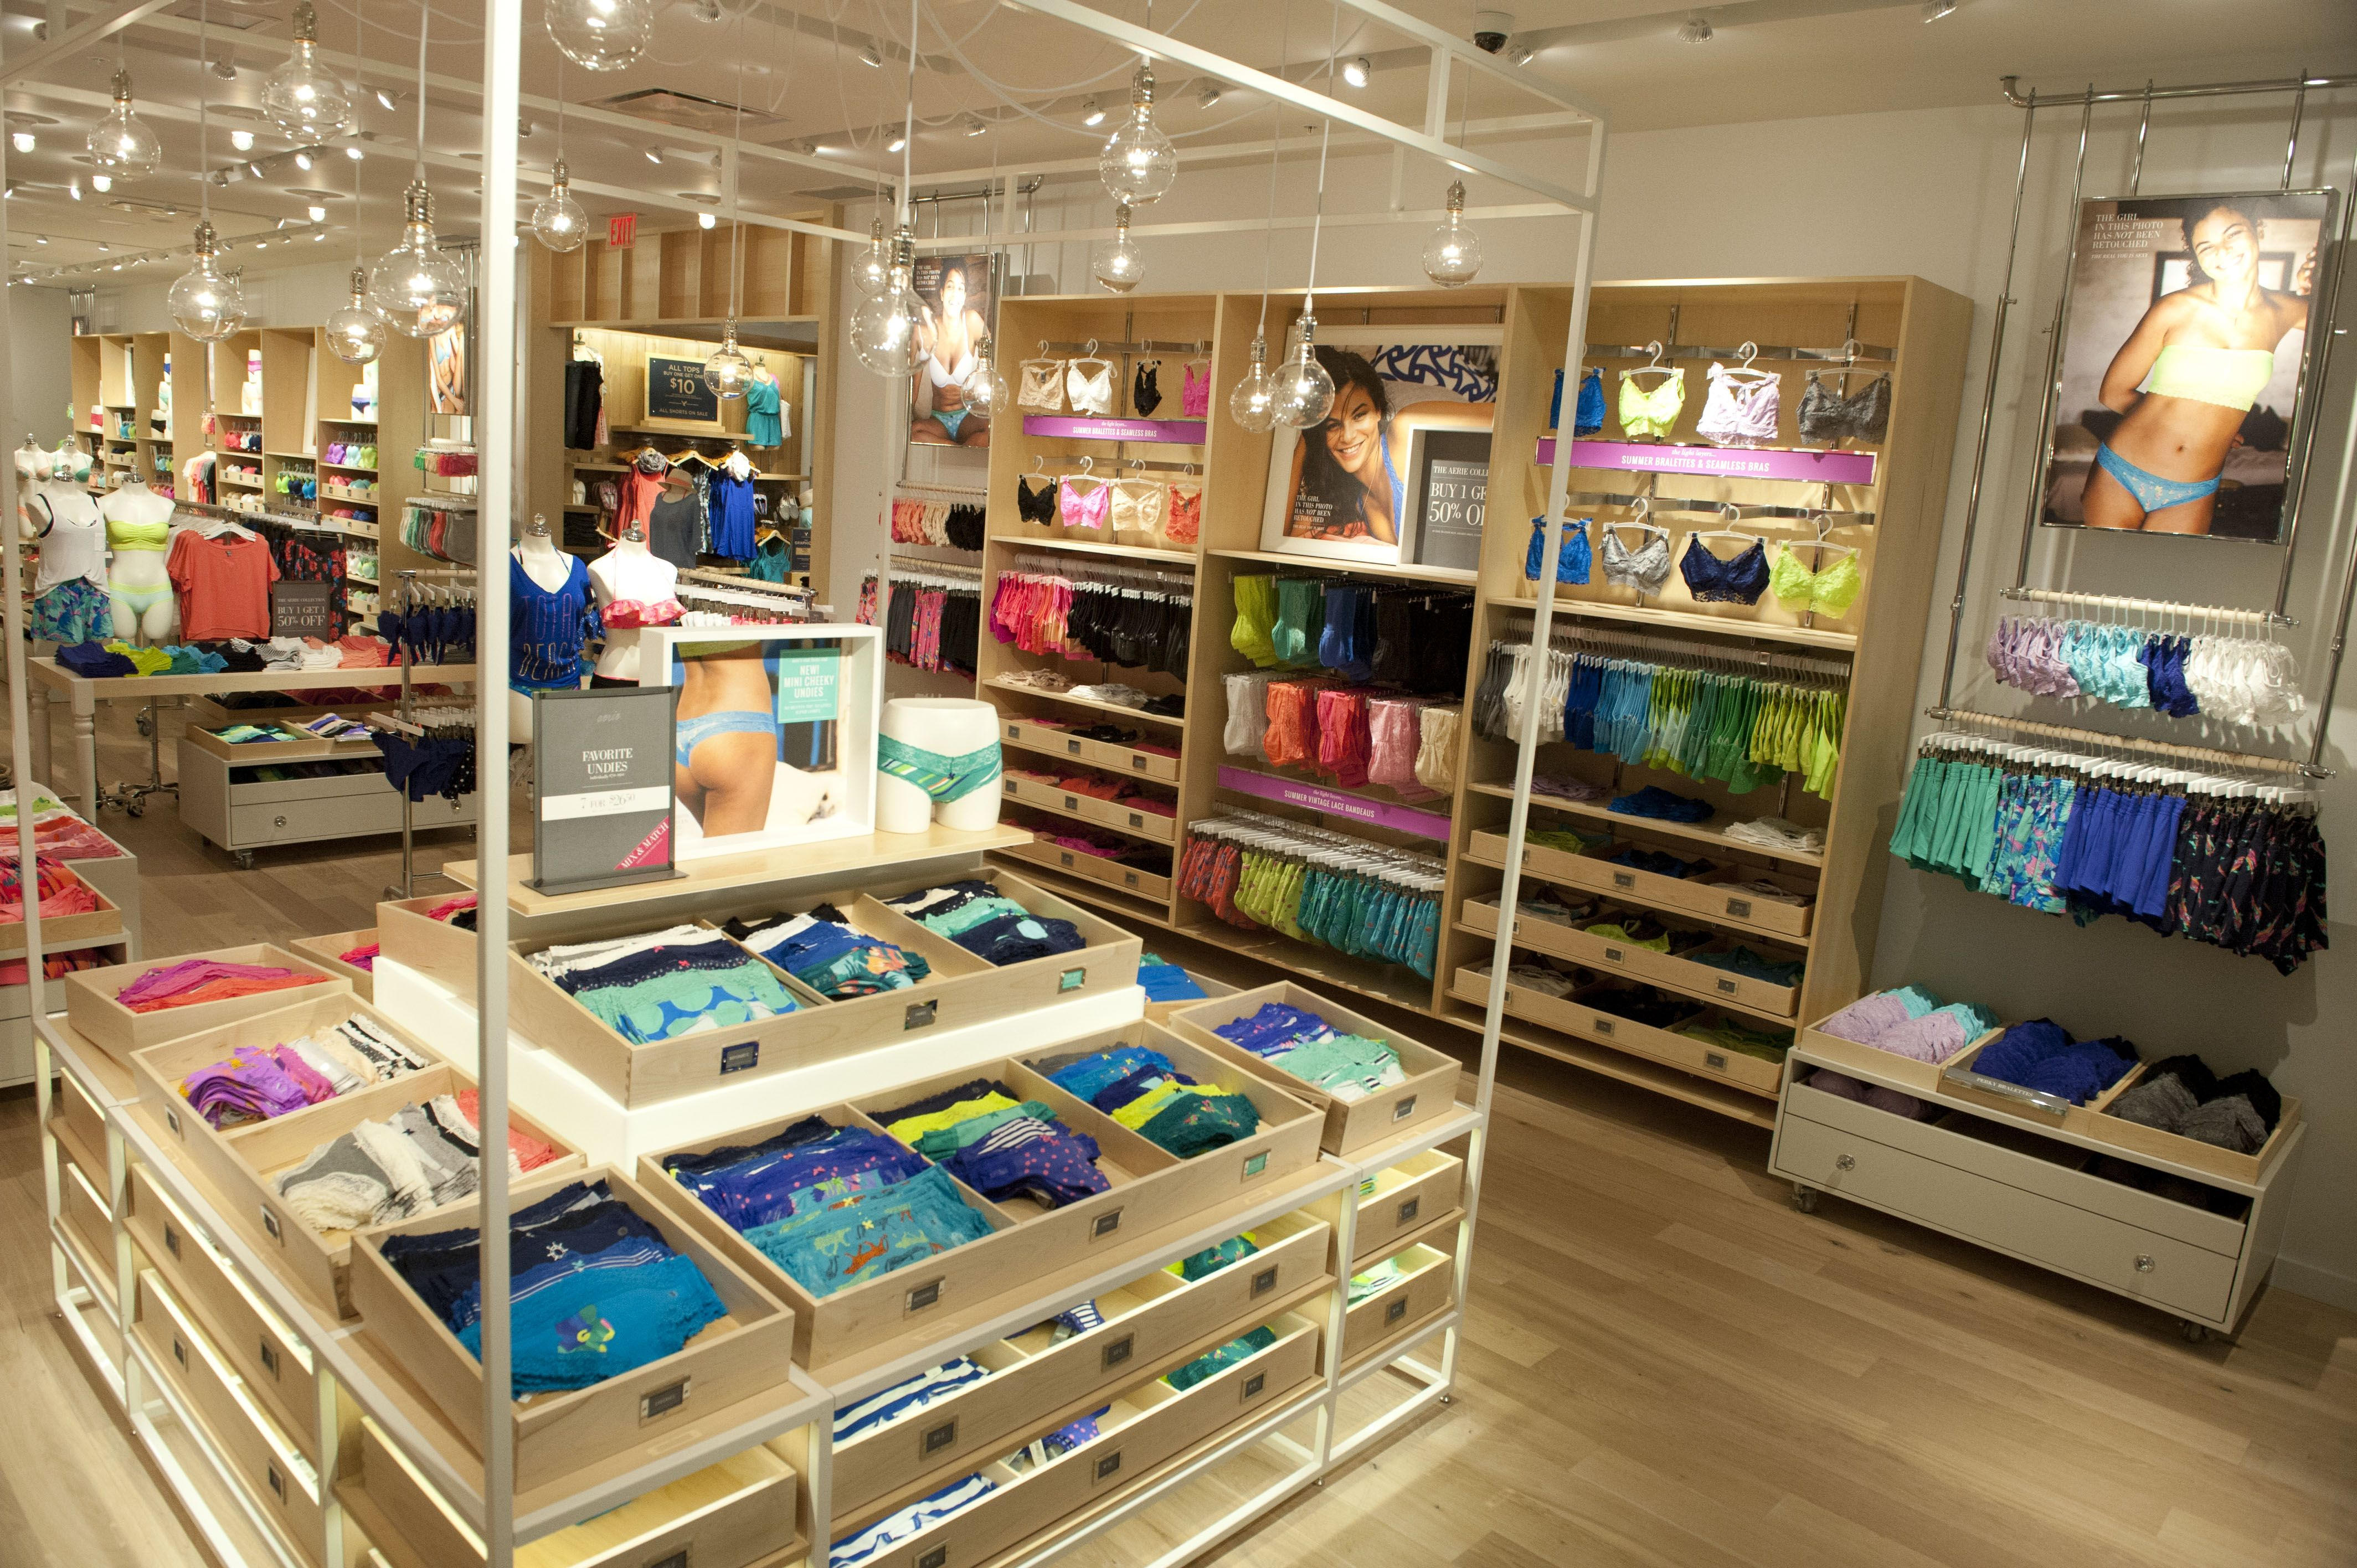 Aerie Love The Colorful Merchandise And The Organized Minimalist